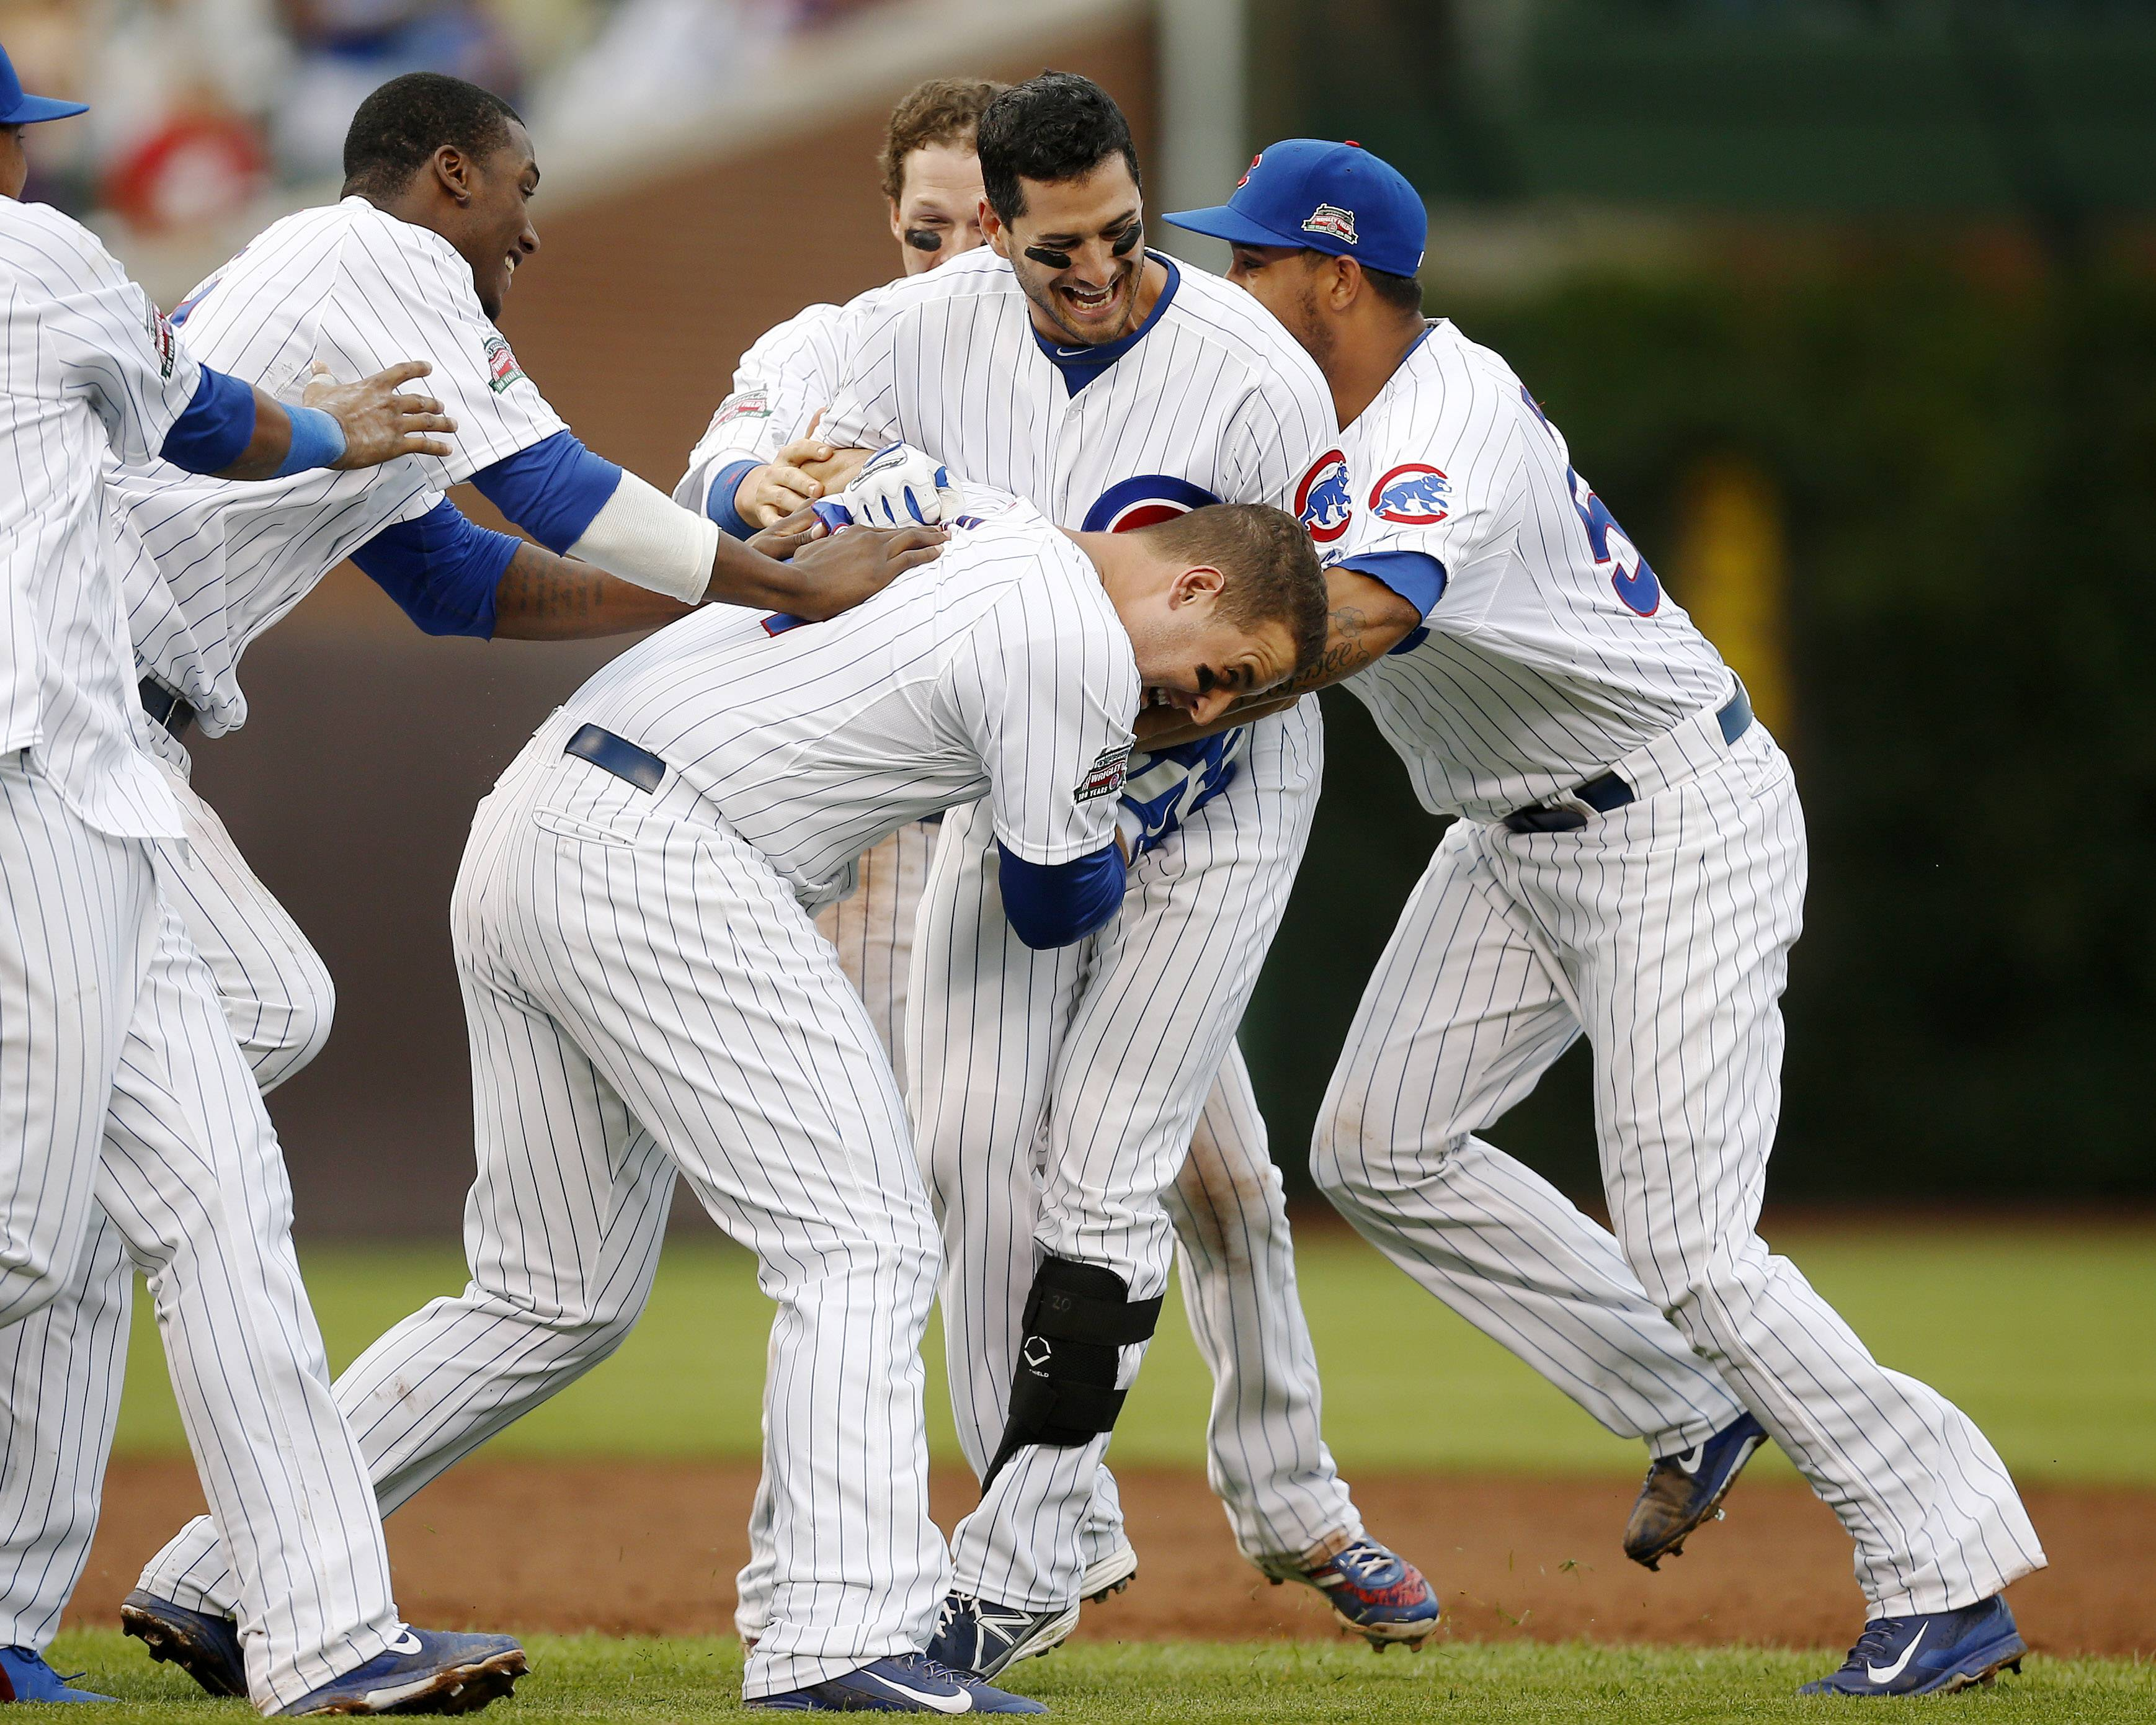 Cubs pile onto Justin Ruggiano, center, after Ruggiano hit a game winning RBI single against the Atlanta Braves during the ninth inning of a baseball game on Friday. The Cubs won 5-4.